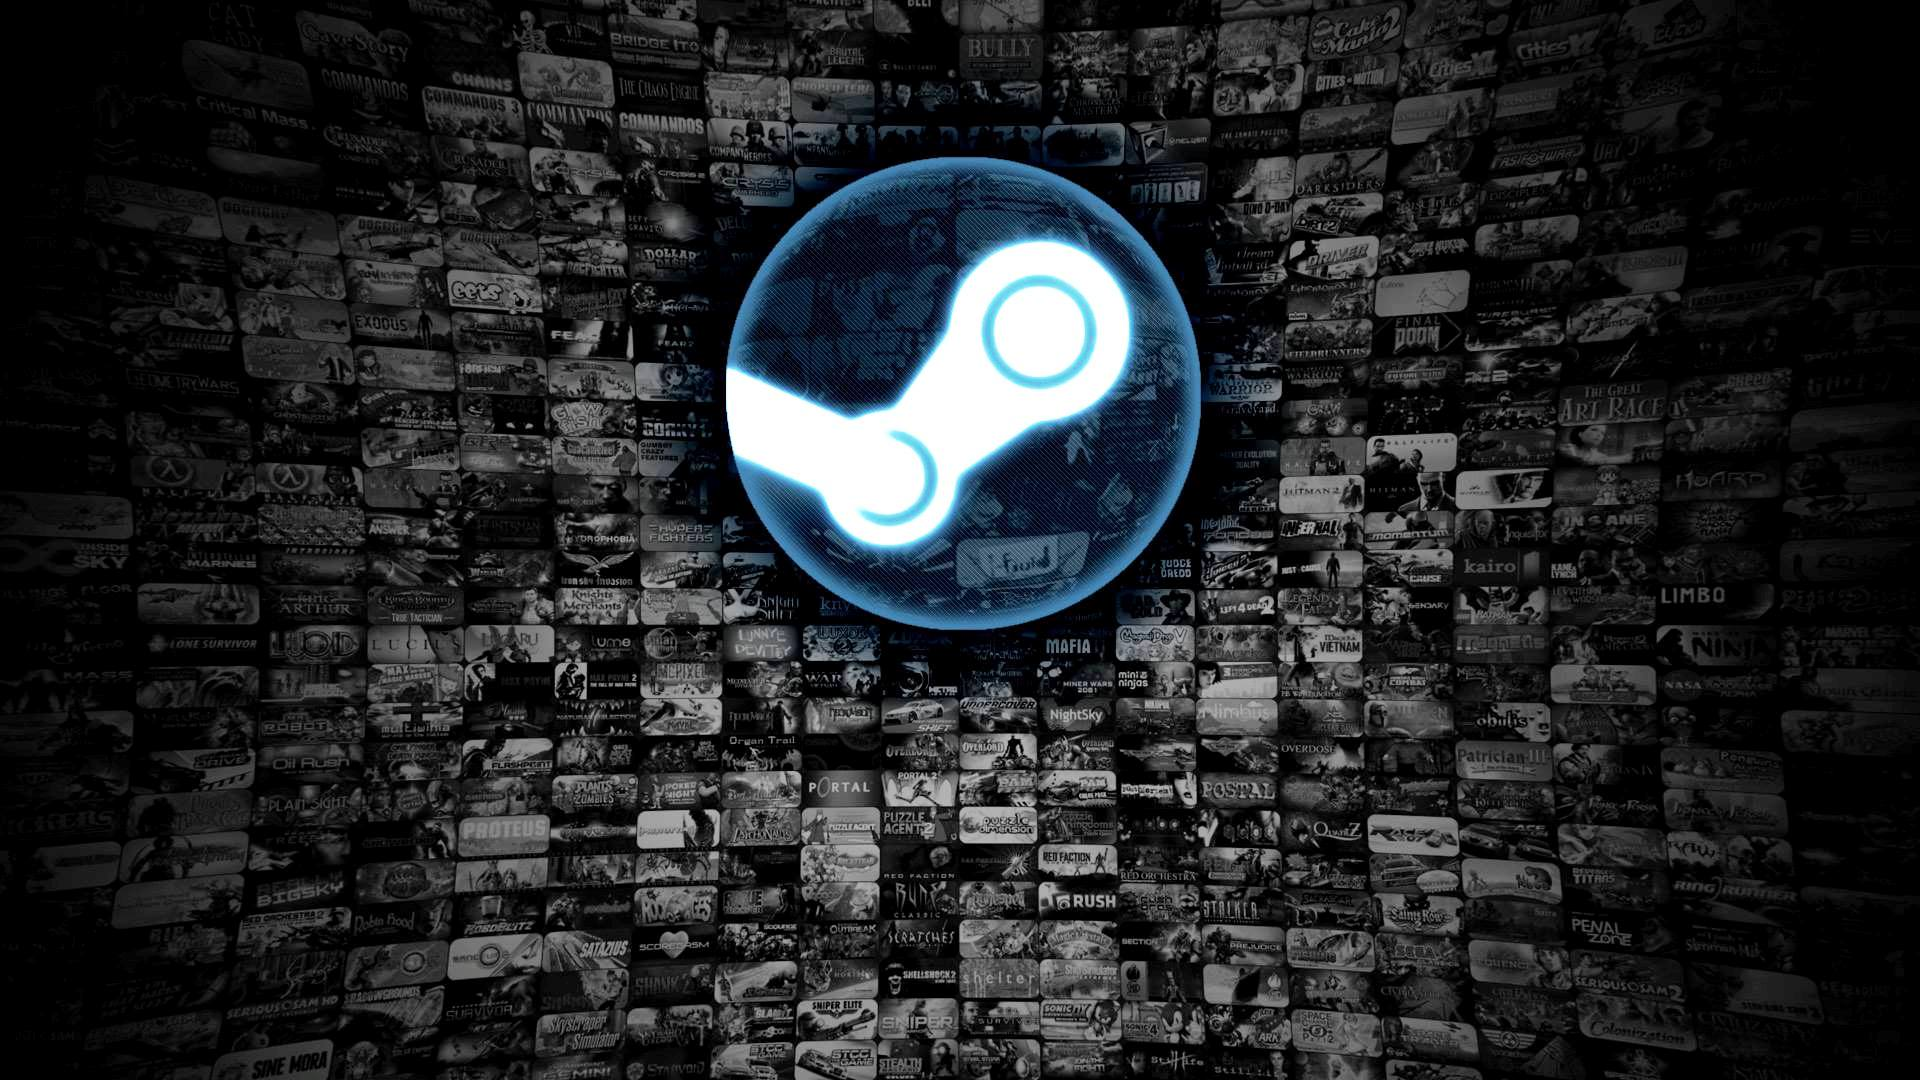 It Happened To Me: My Steam Account Got Hacked